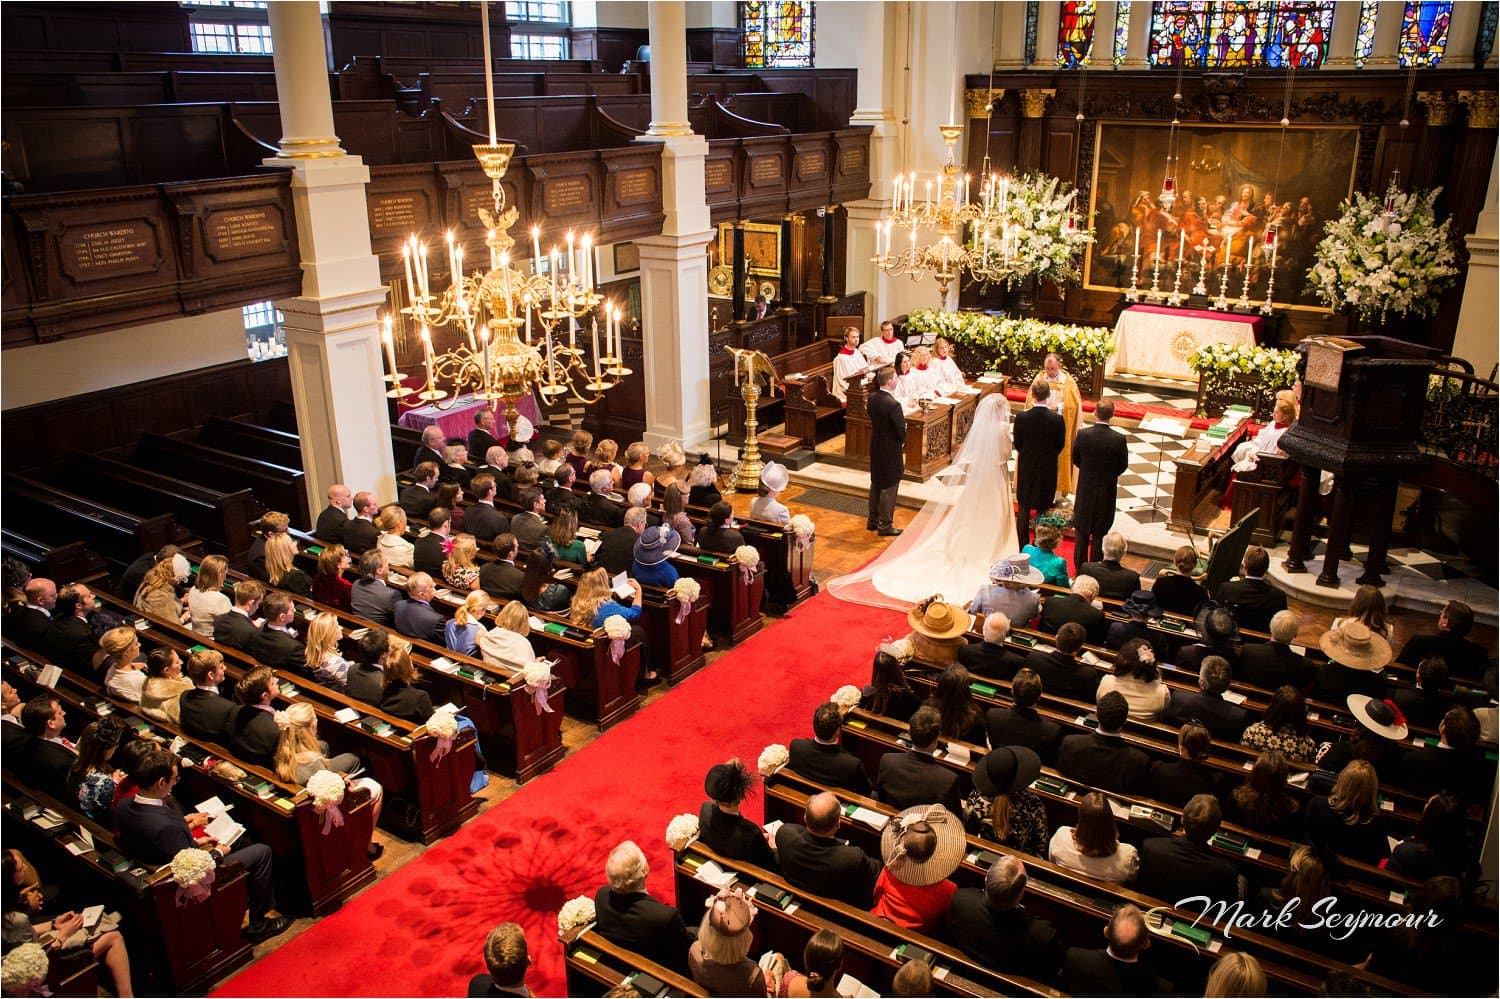 A full church wedding